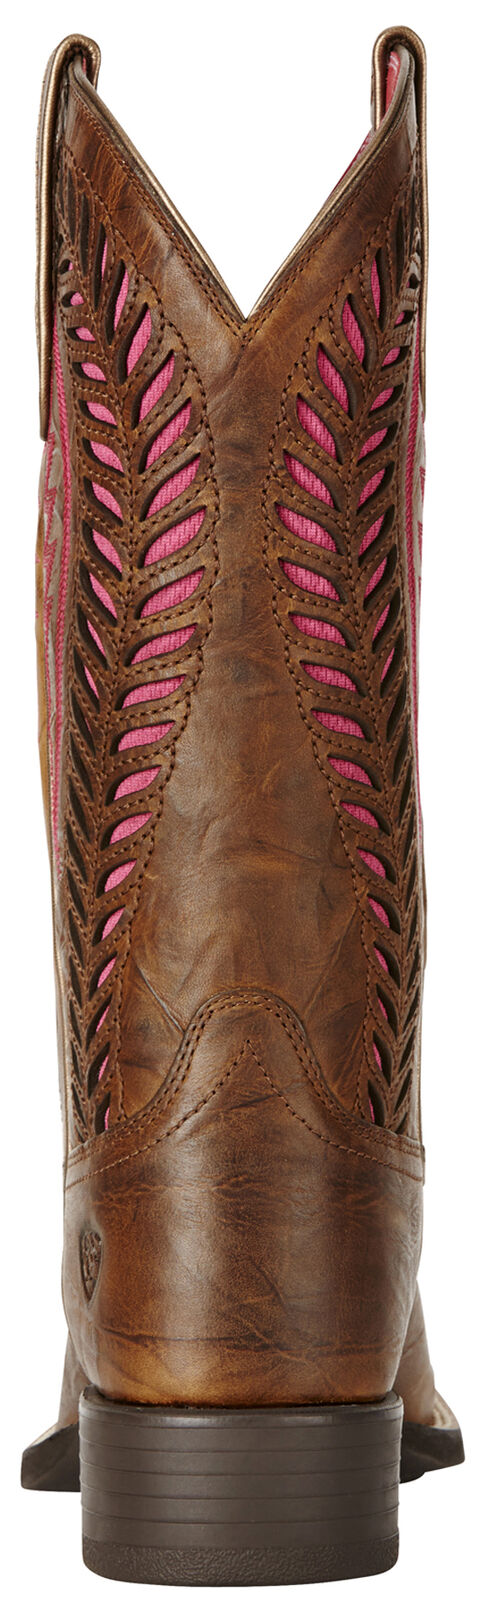 Ariat Brown Women's Quickdraw Venttek Boots - Wide Square Toe , Brown, hi-res